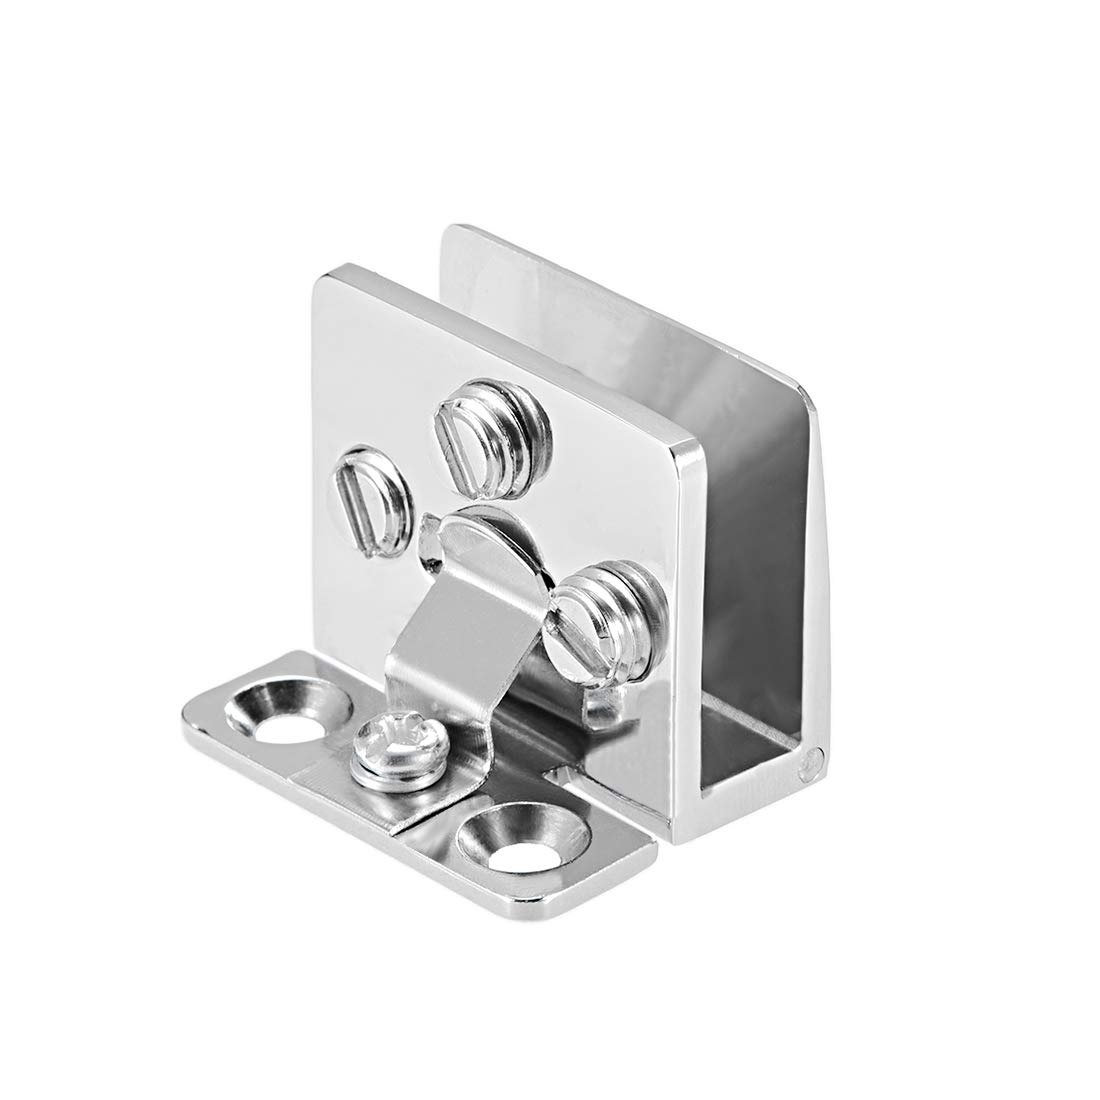 for 5-8mm Glass Thickness 4Pcs uxcell Glass Door Hinge Cupboard Showcase Cabinet Door Hinge Glass Clamp,Zinc Alloy